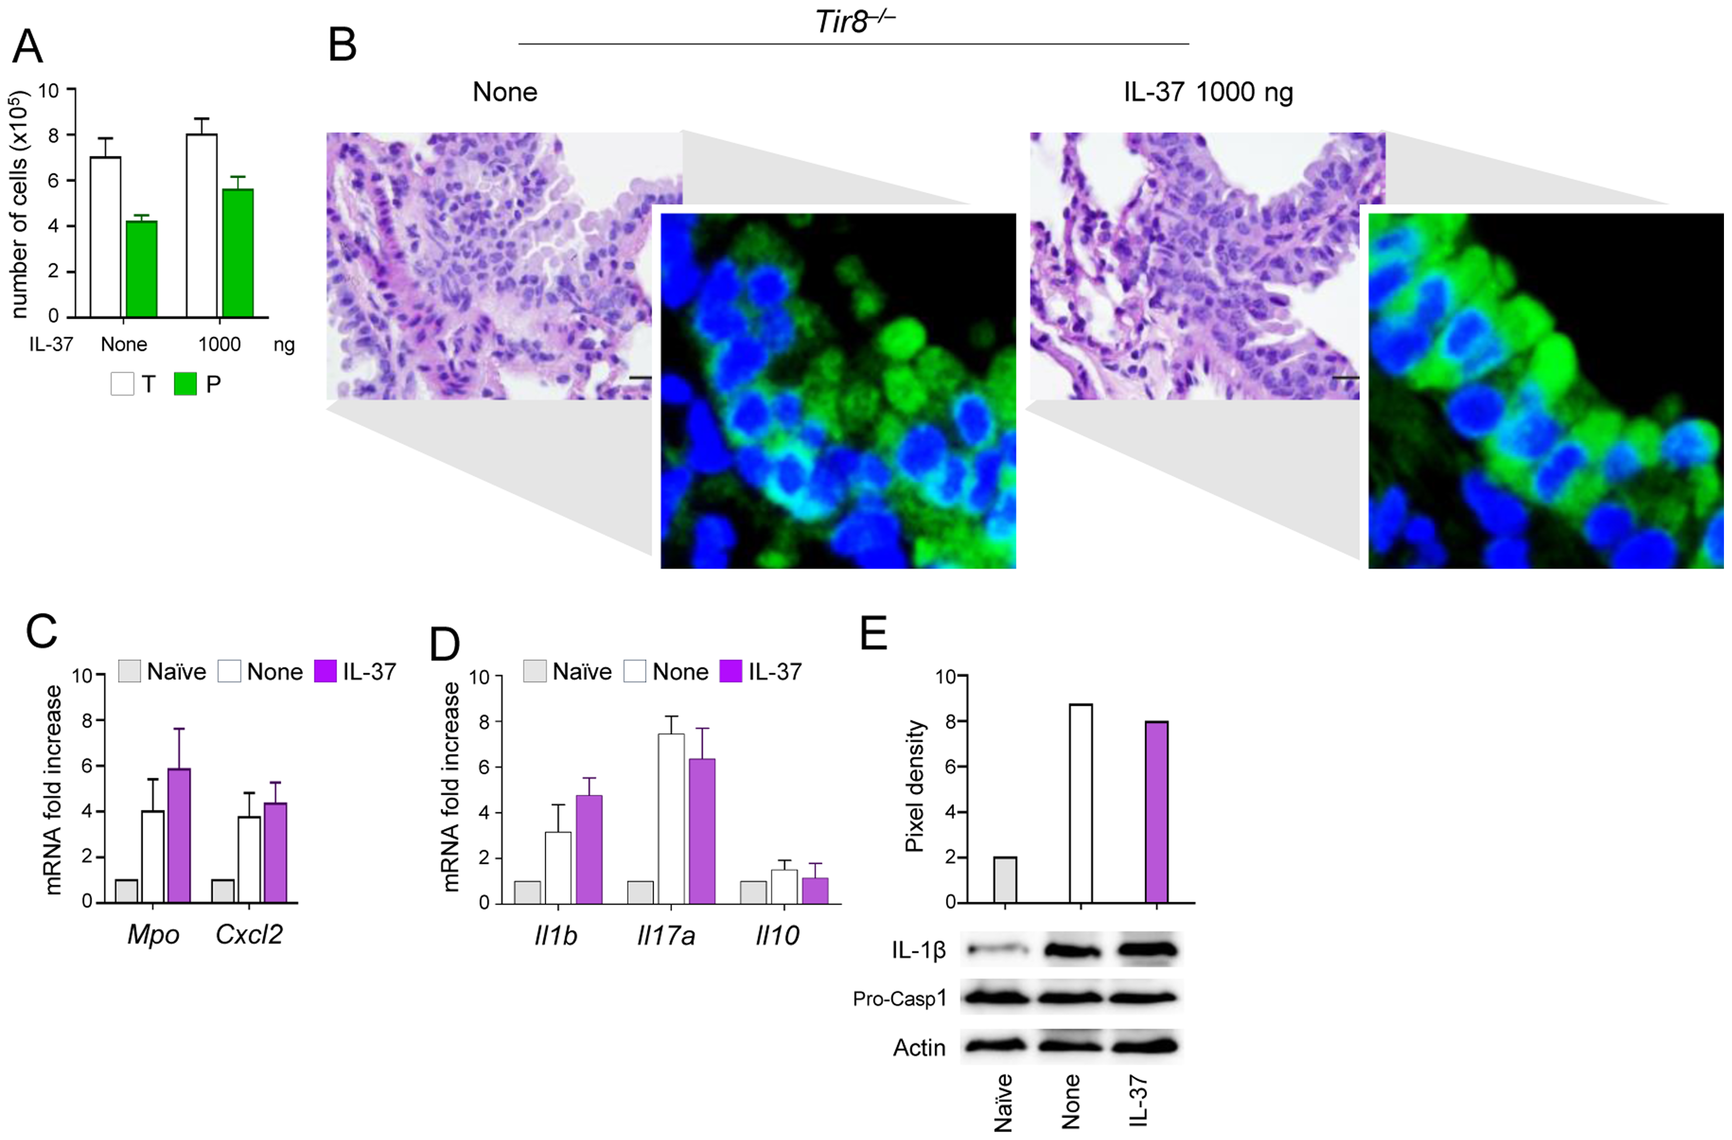 IL-37 fails to inhibit inflammasome activation in <i>Tir8<sup>−/−</sup></i> mice.